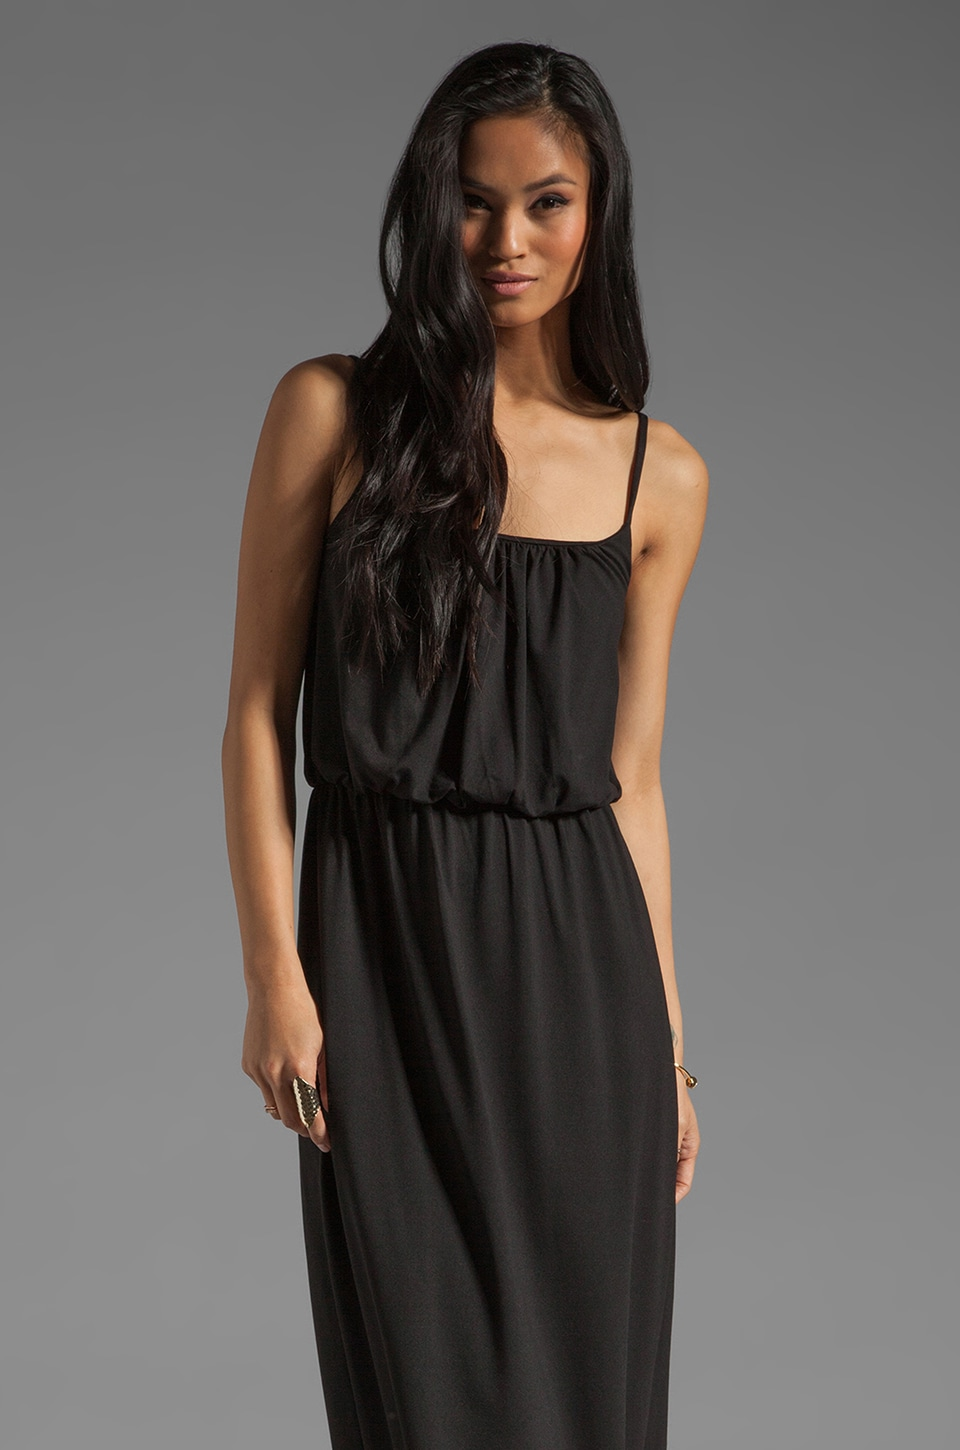 Susana Monaco Light Supplex Blouson Tank Dress in Black